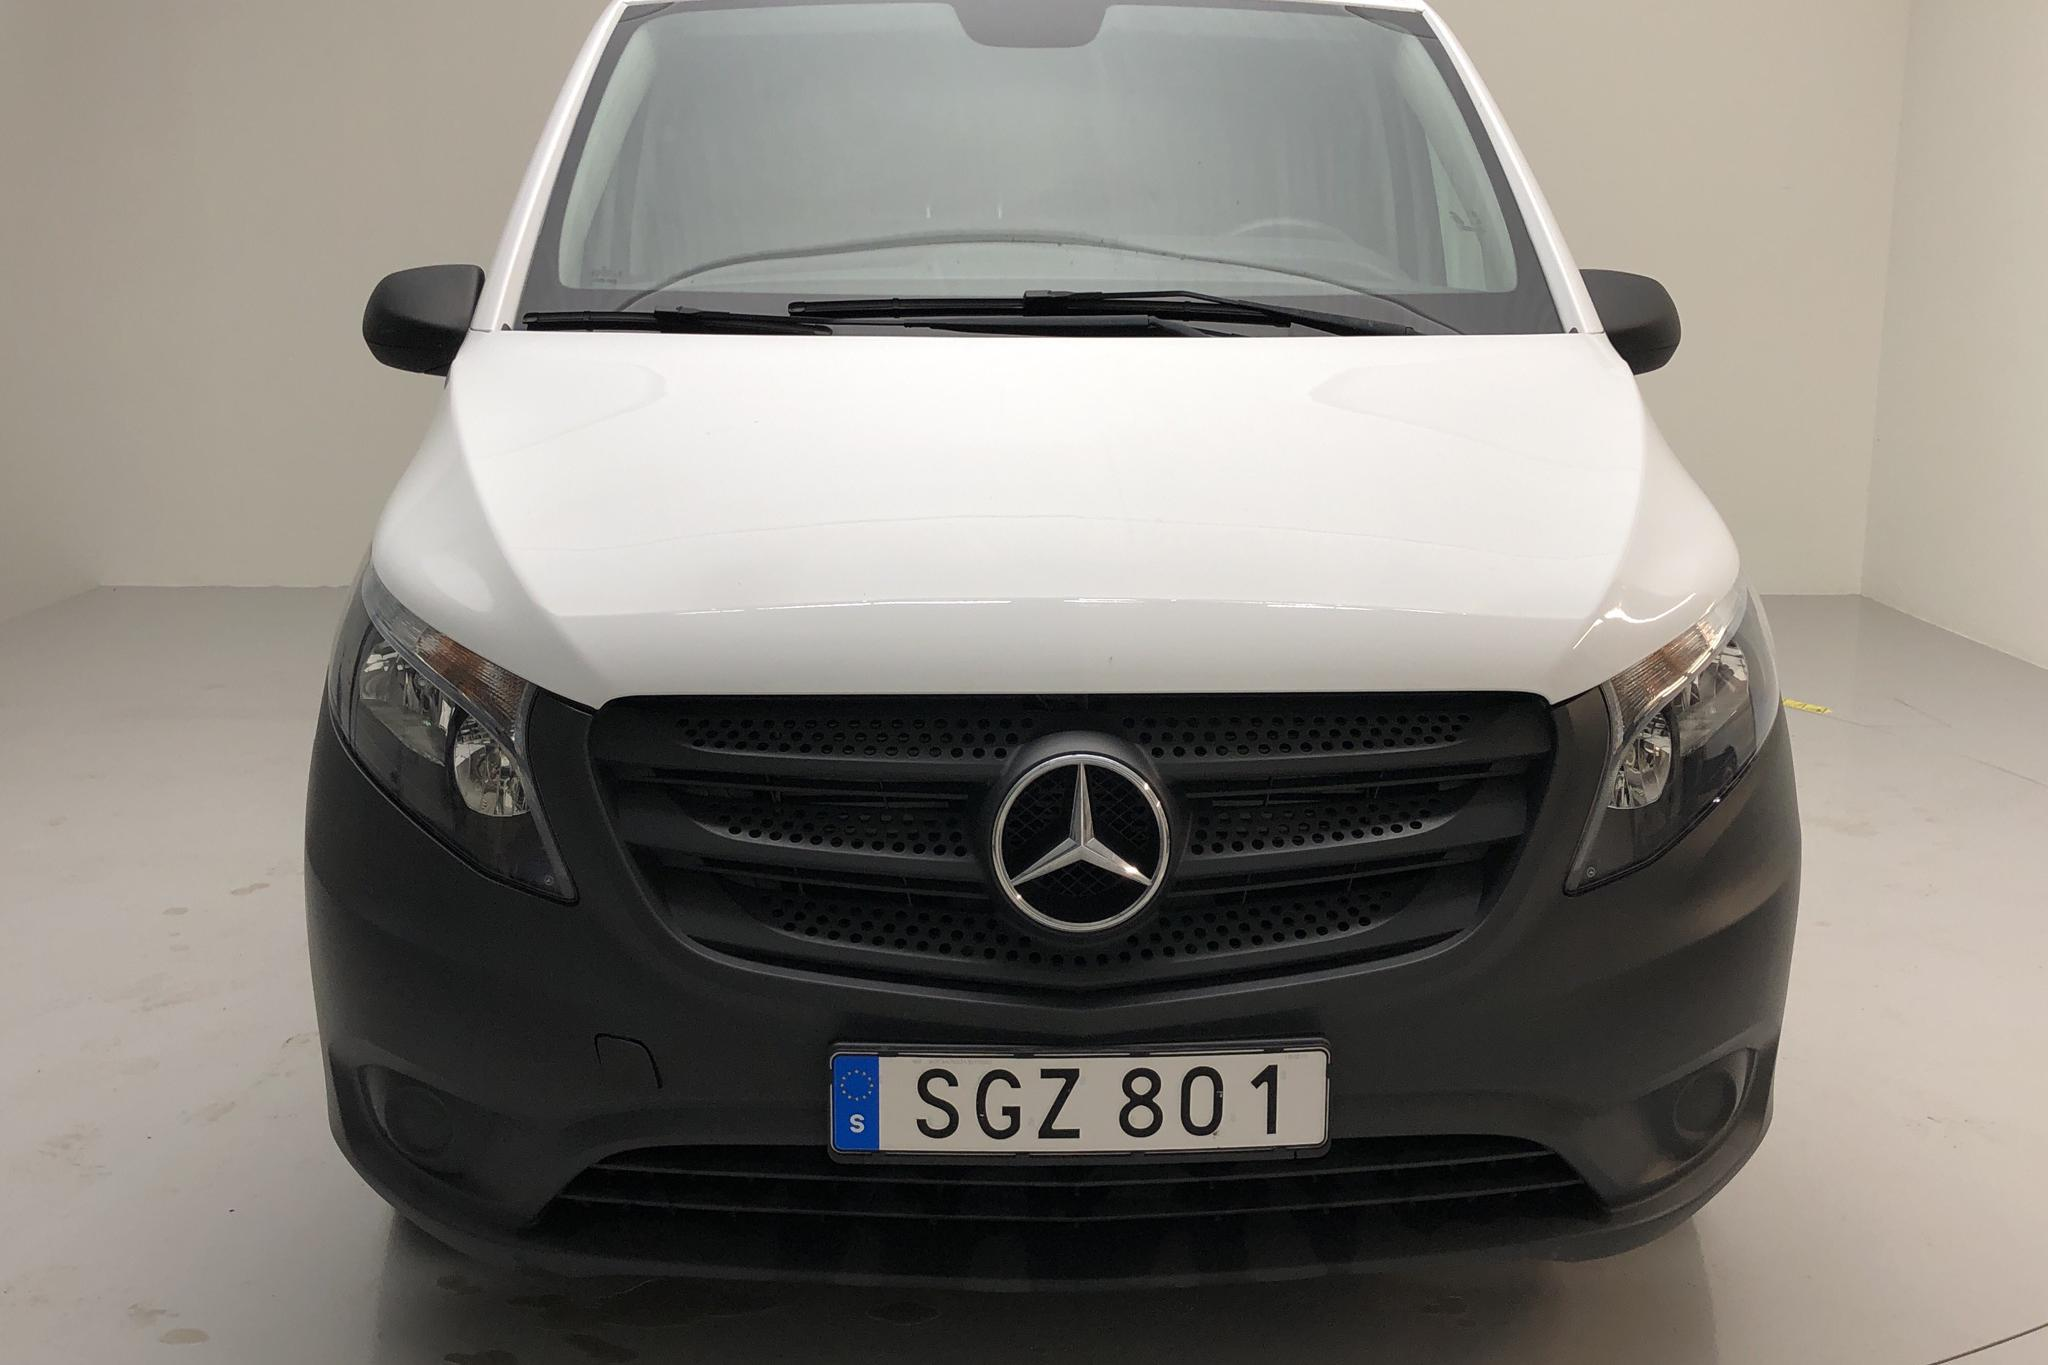 Mercedes Vito 111 CDI W640 (114hk) - 34 410 km - Manual - white - 2019